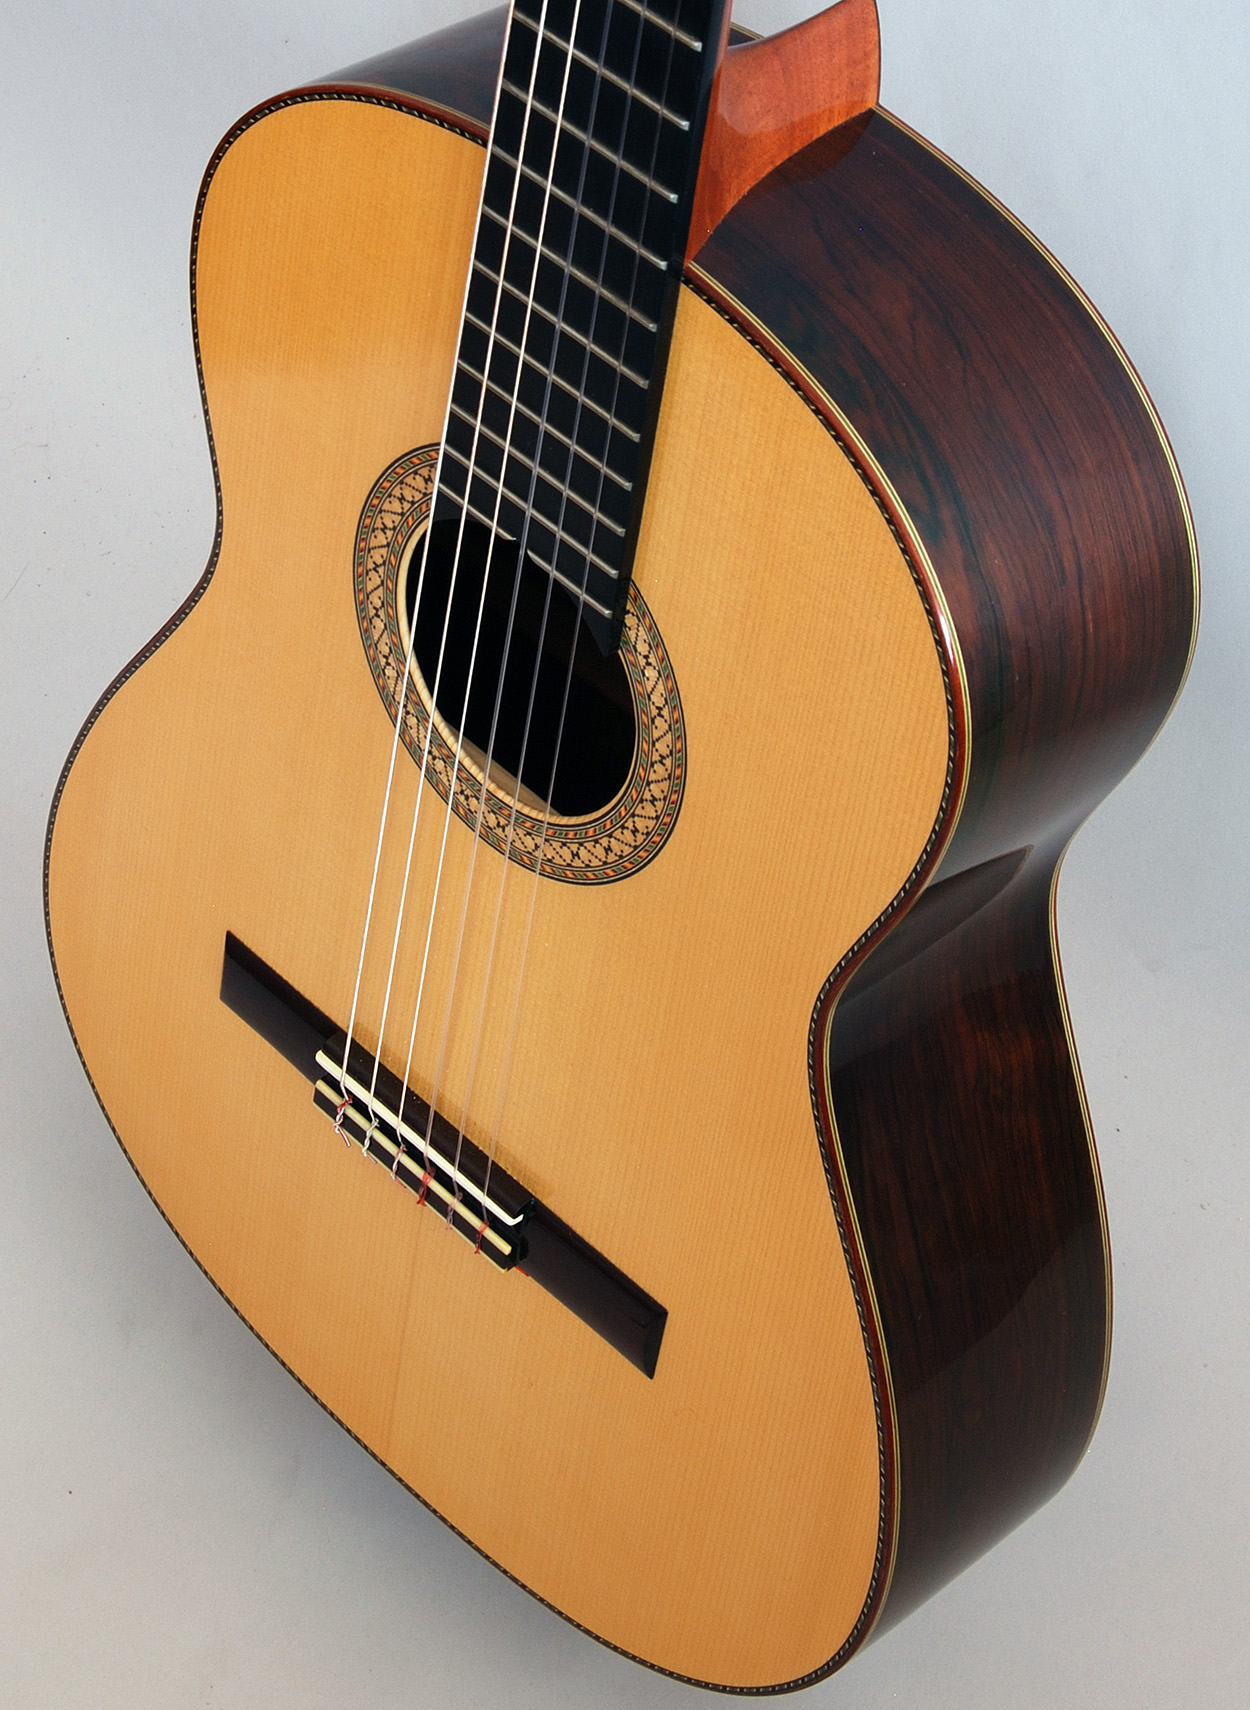 Side By Side For Sale >> Mikhail Robert Guitar For Sale